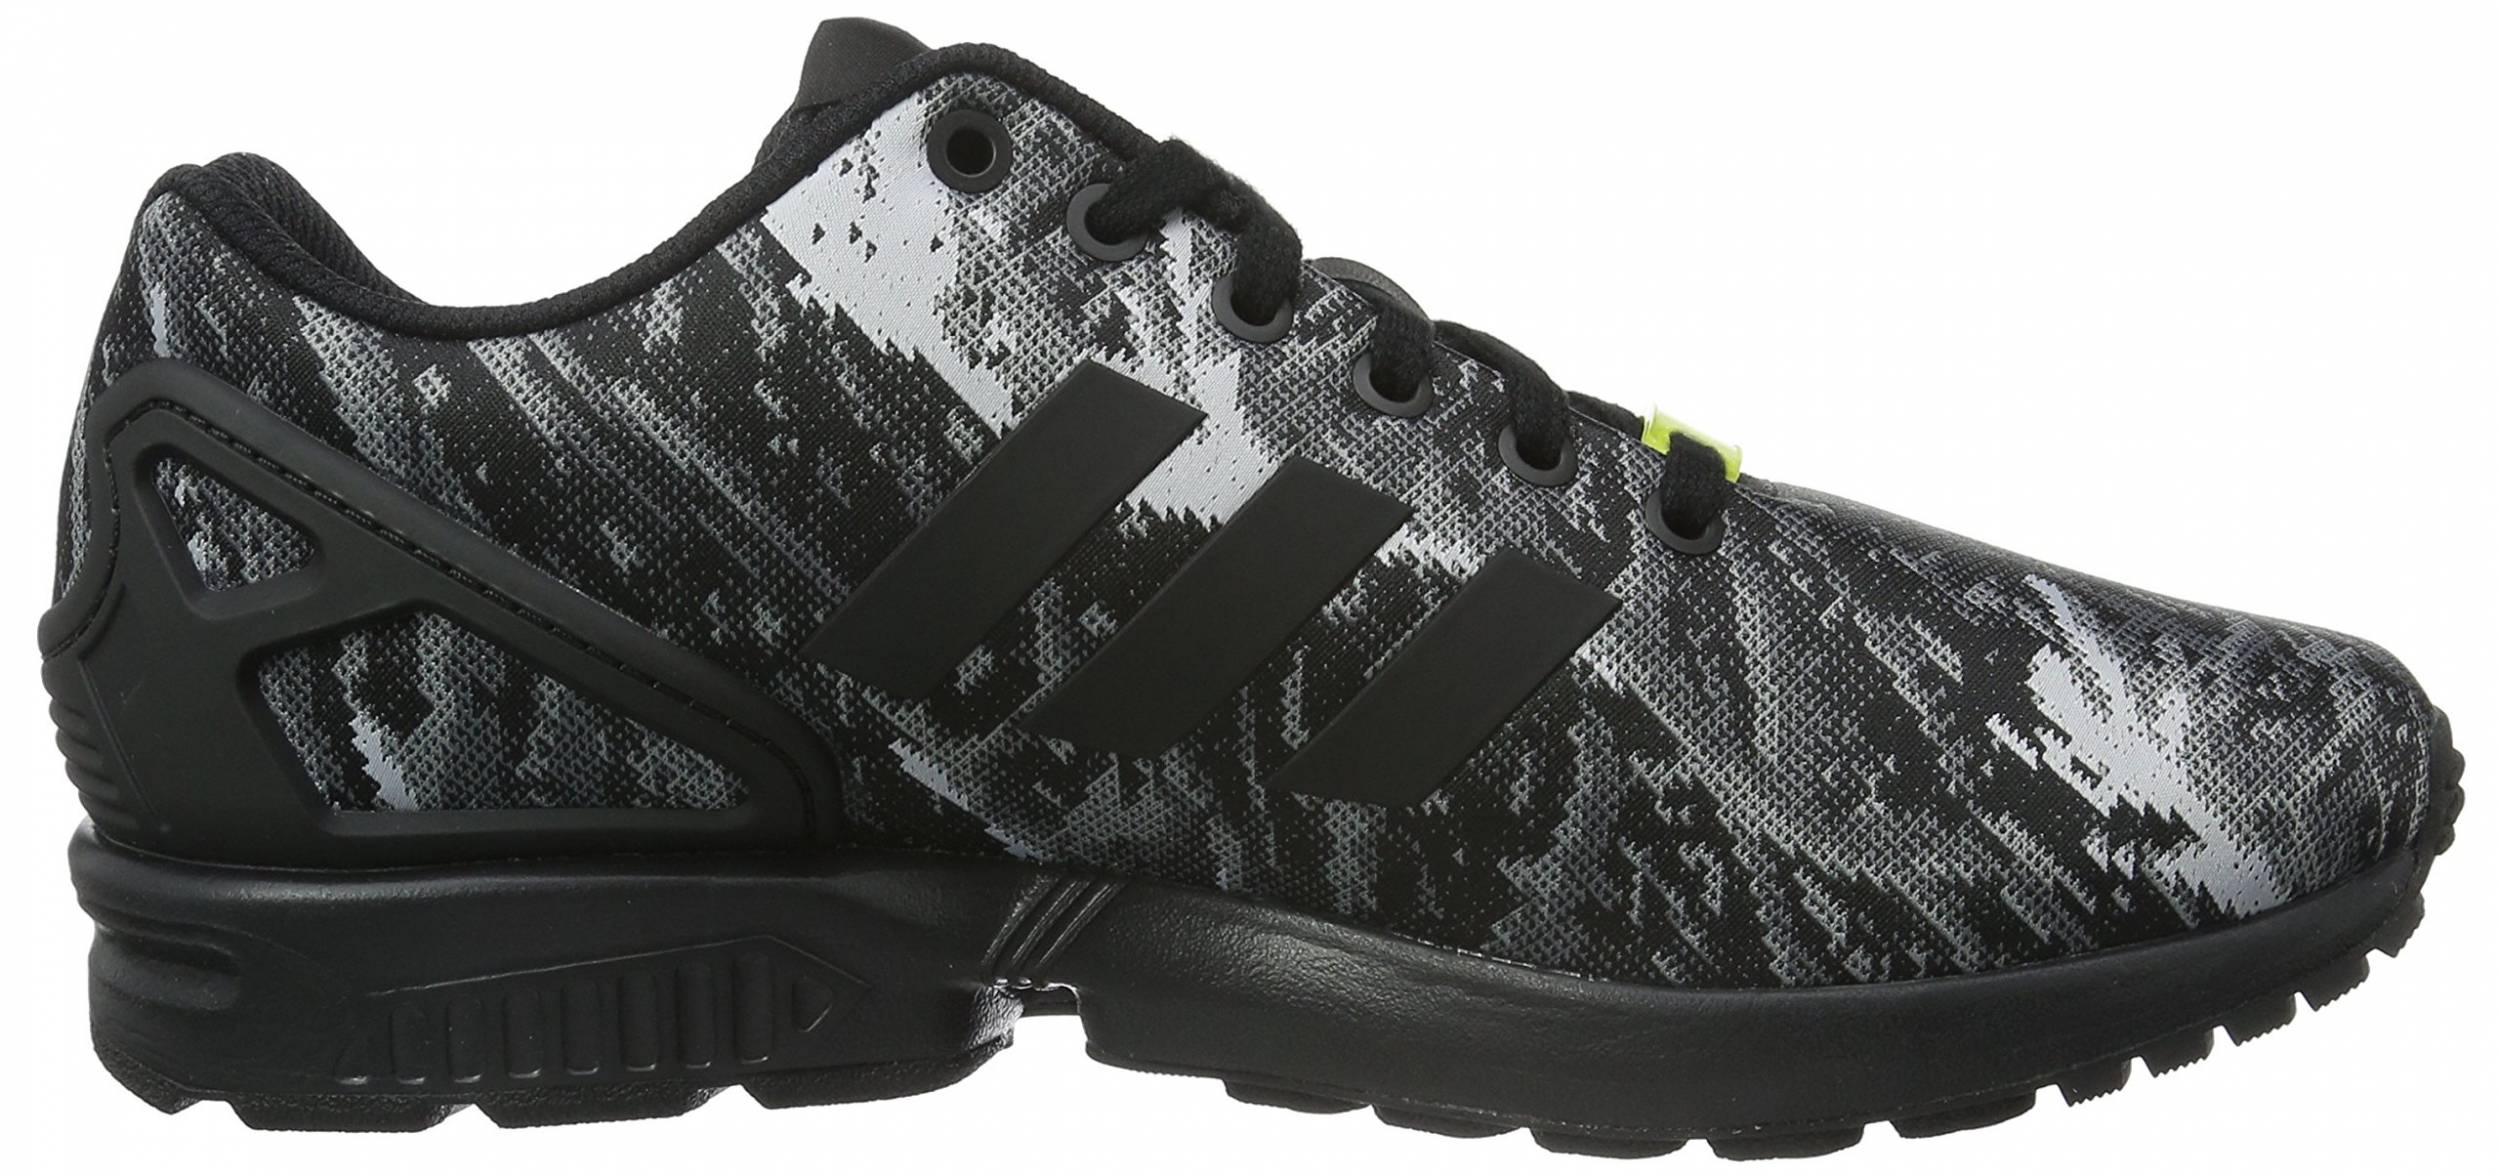 Accor patrimonio Rosa  Adidas ZX Flux Weave sneakers in grey (only $68) | RunRepeat